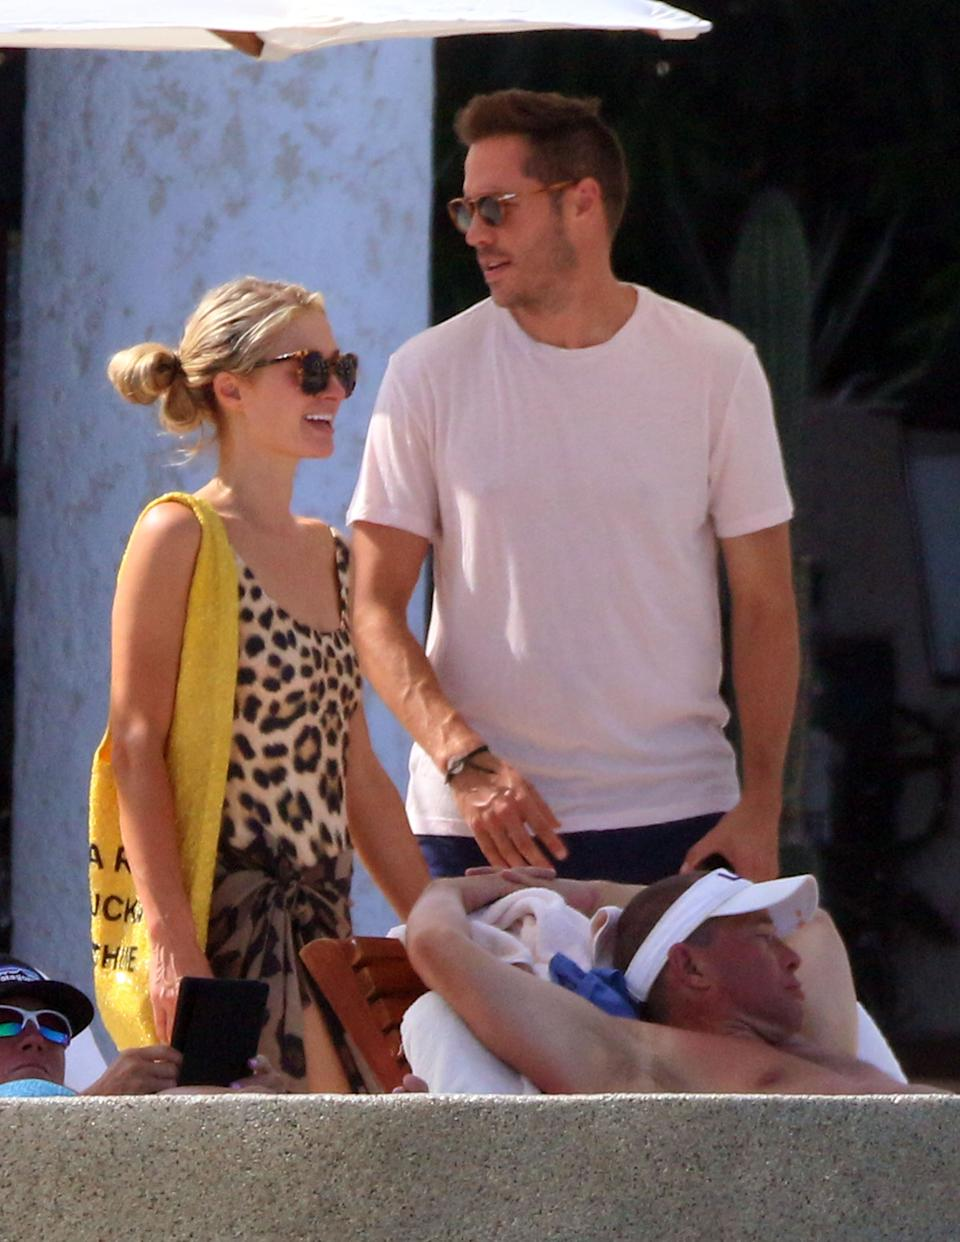 Paris Hilton y su novio Carter Reum en un resort de lujo en Cabo San Lucas. (Photo by Clasos/Getty Images)